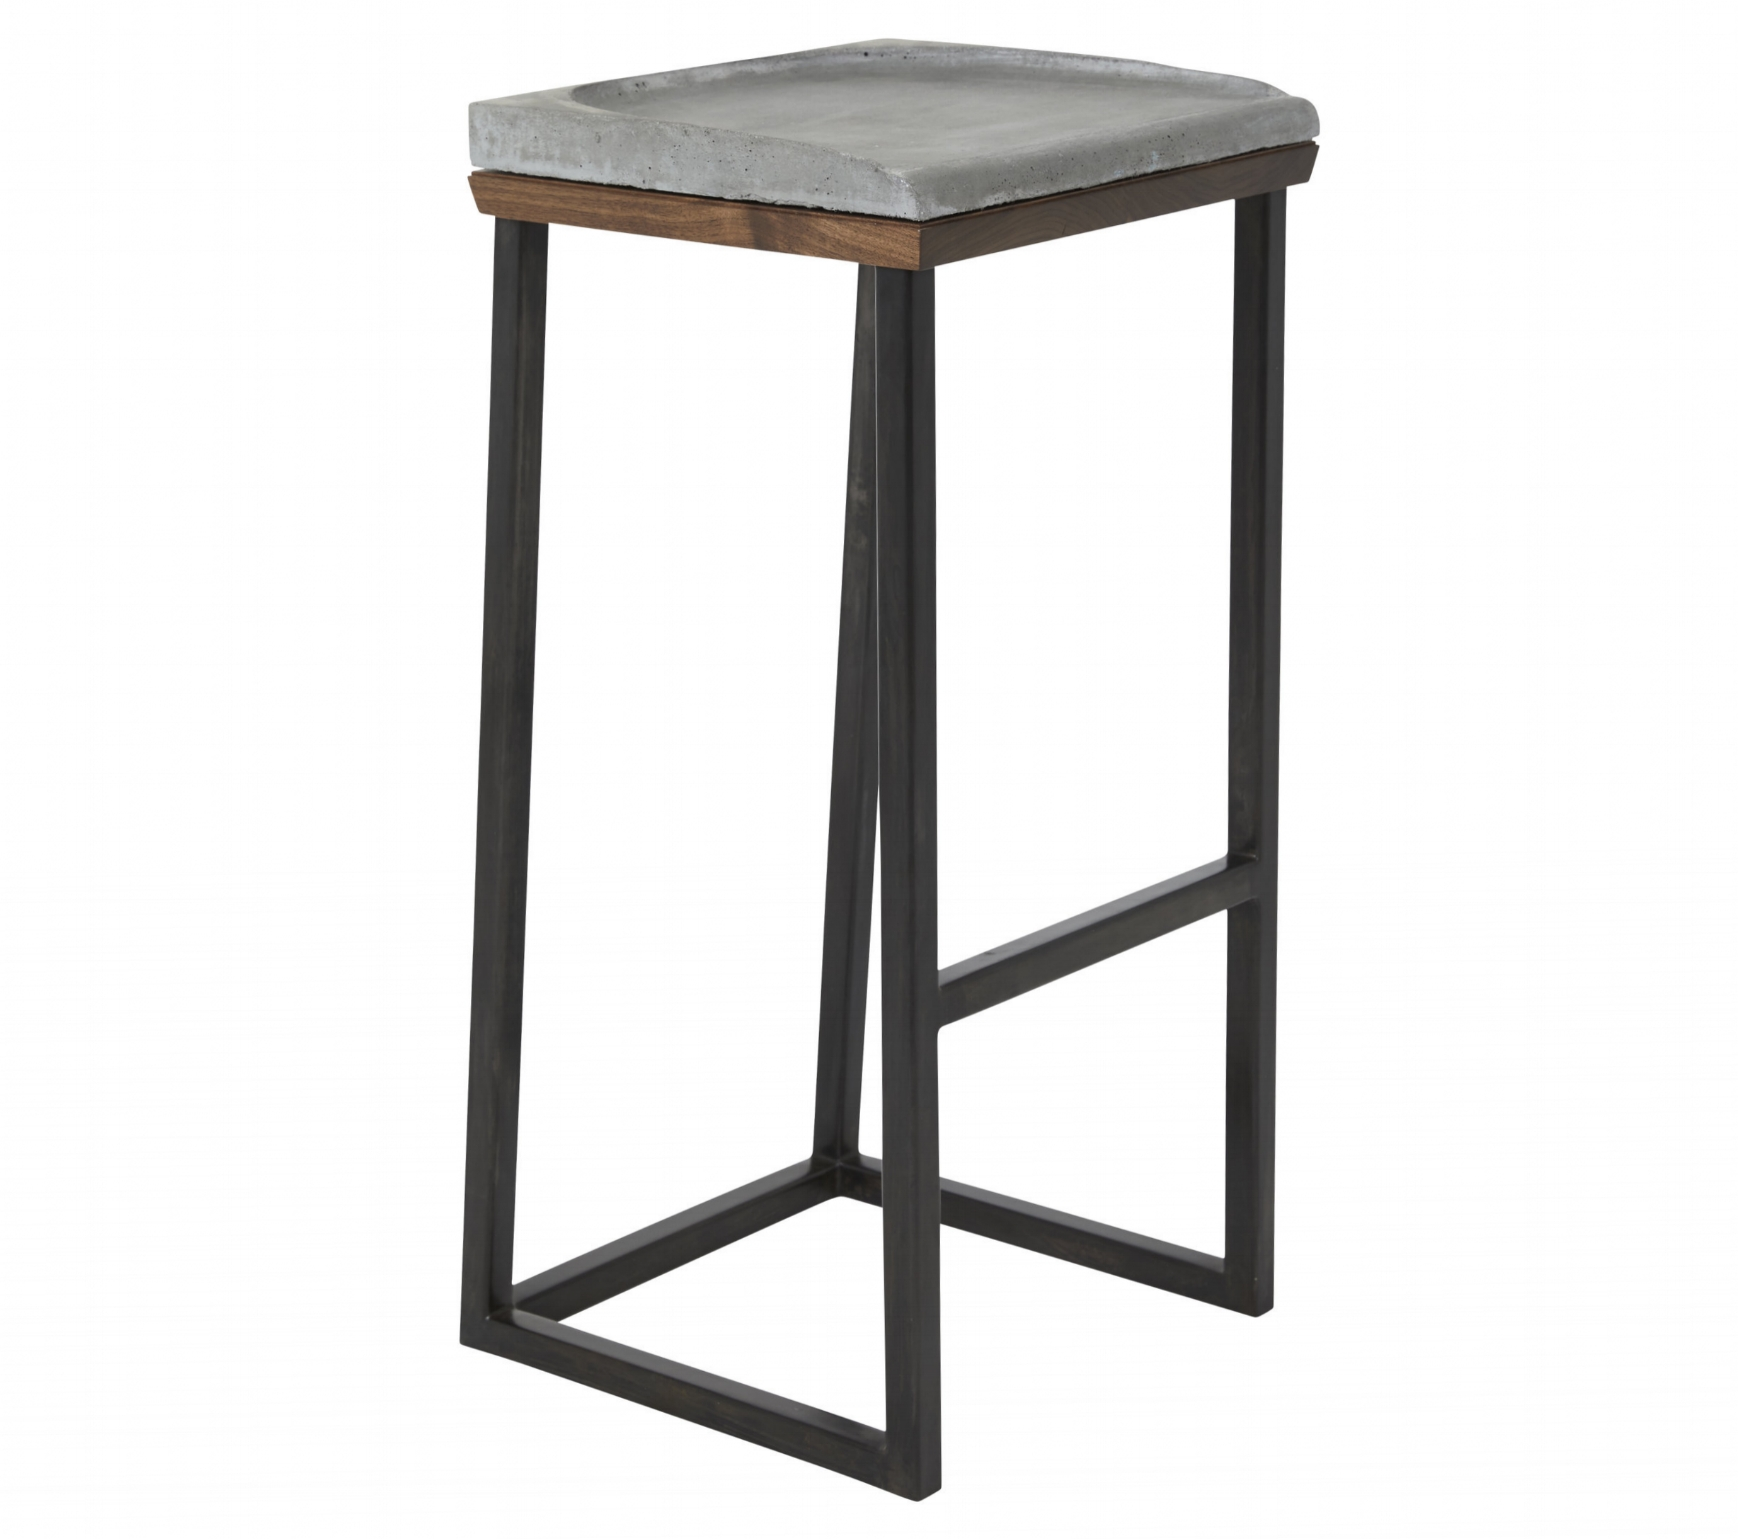 Concrete_Stool_051.jpg